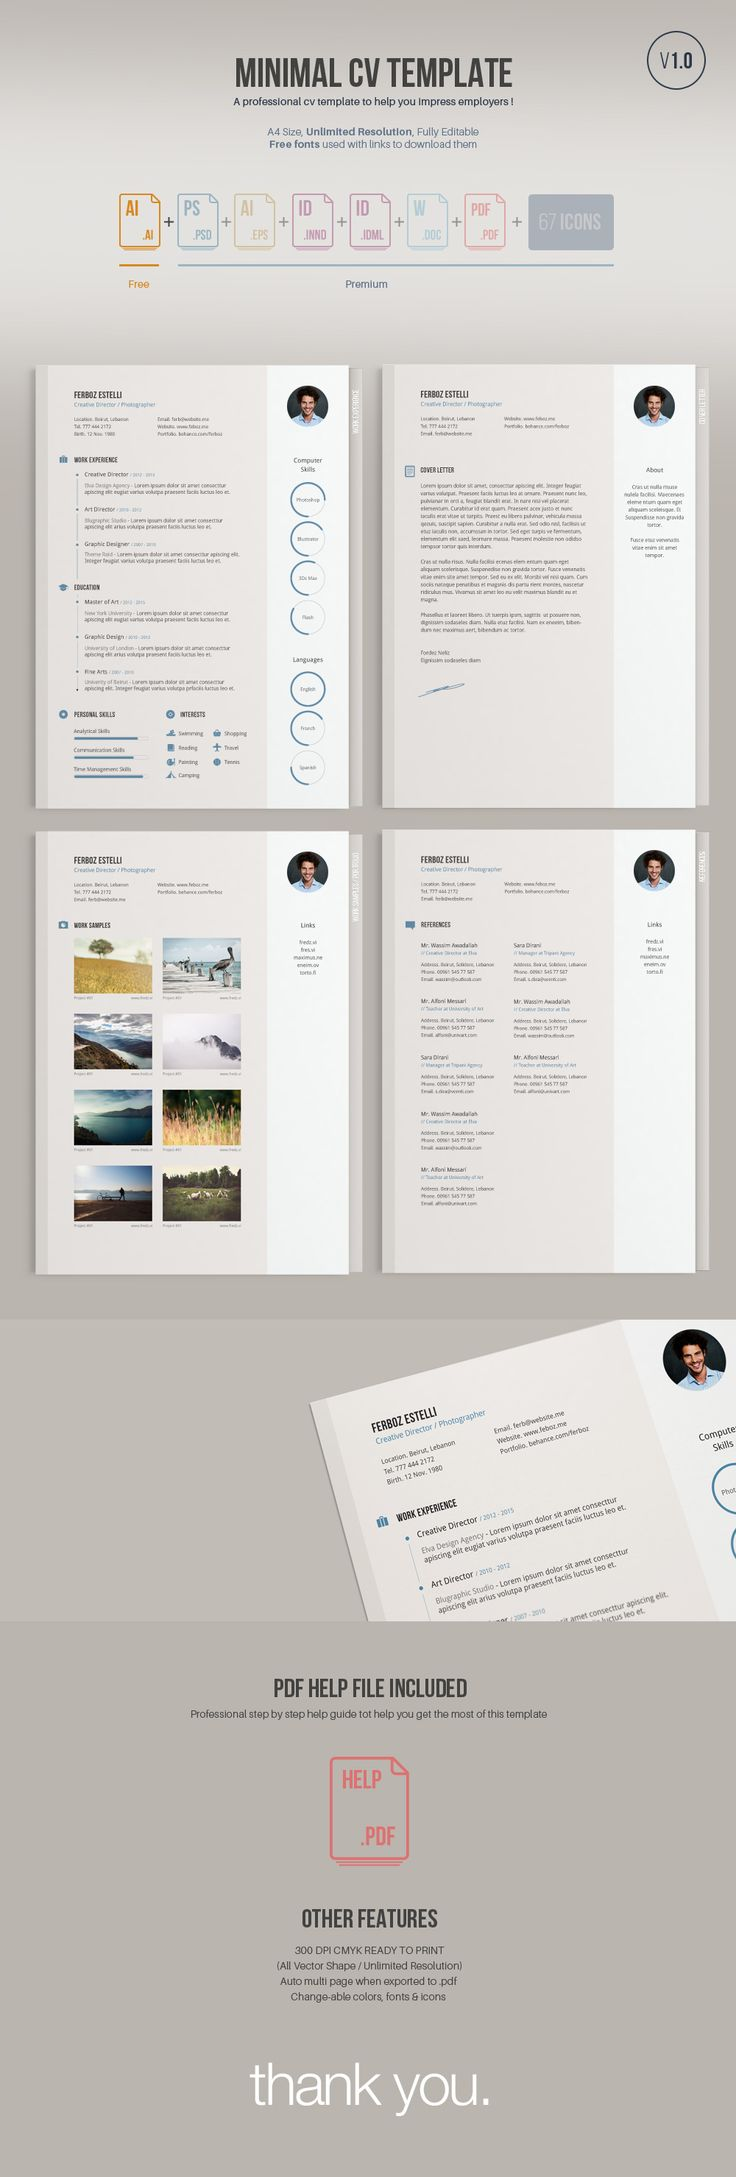 a minimal easy to edit free resume template free version comes in illustrator vector ai. Resume Example. Resume CV Cover Letter